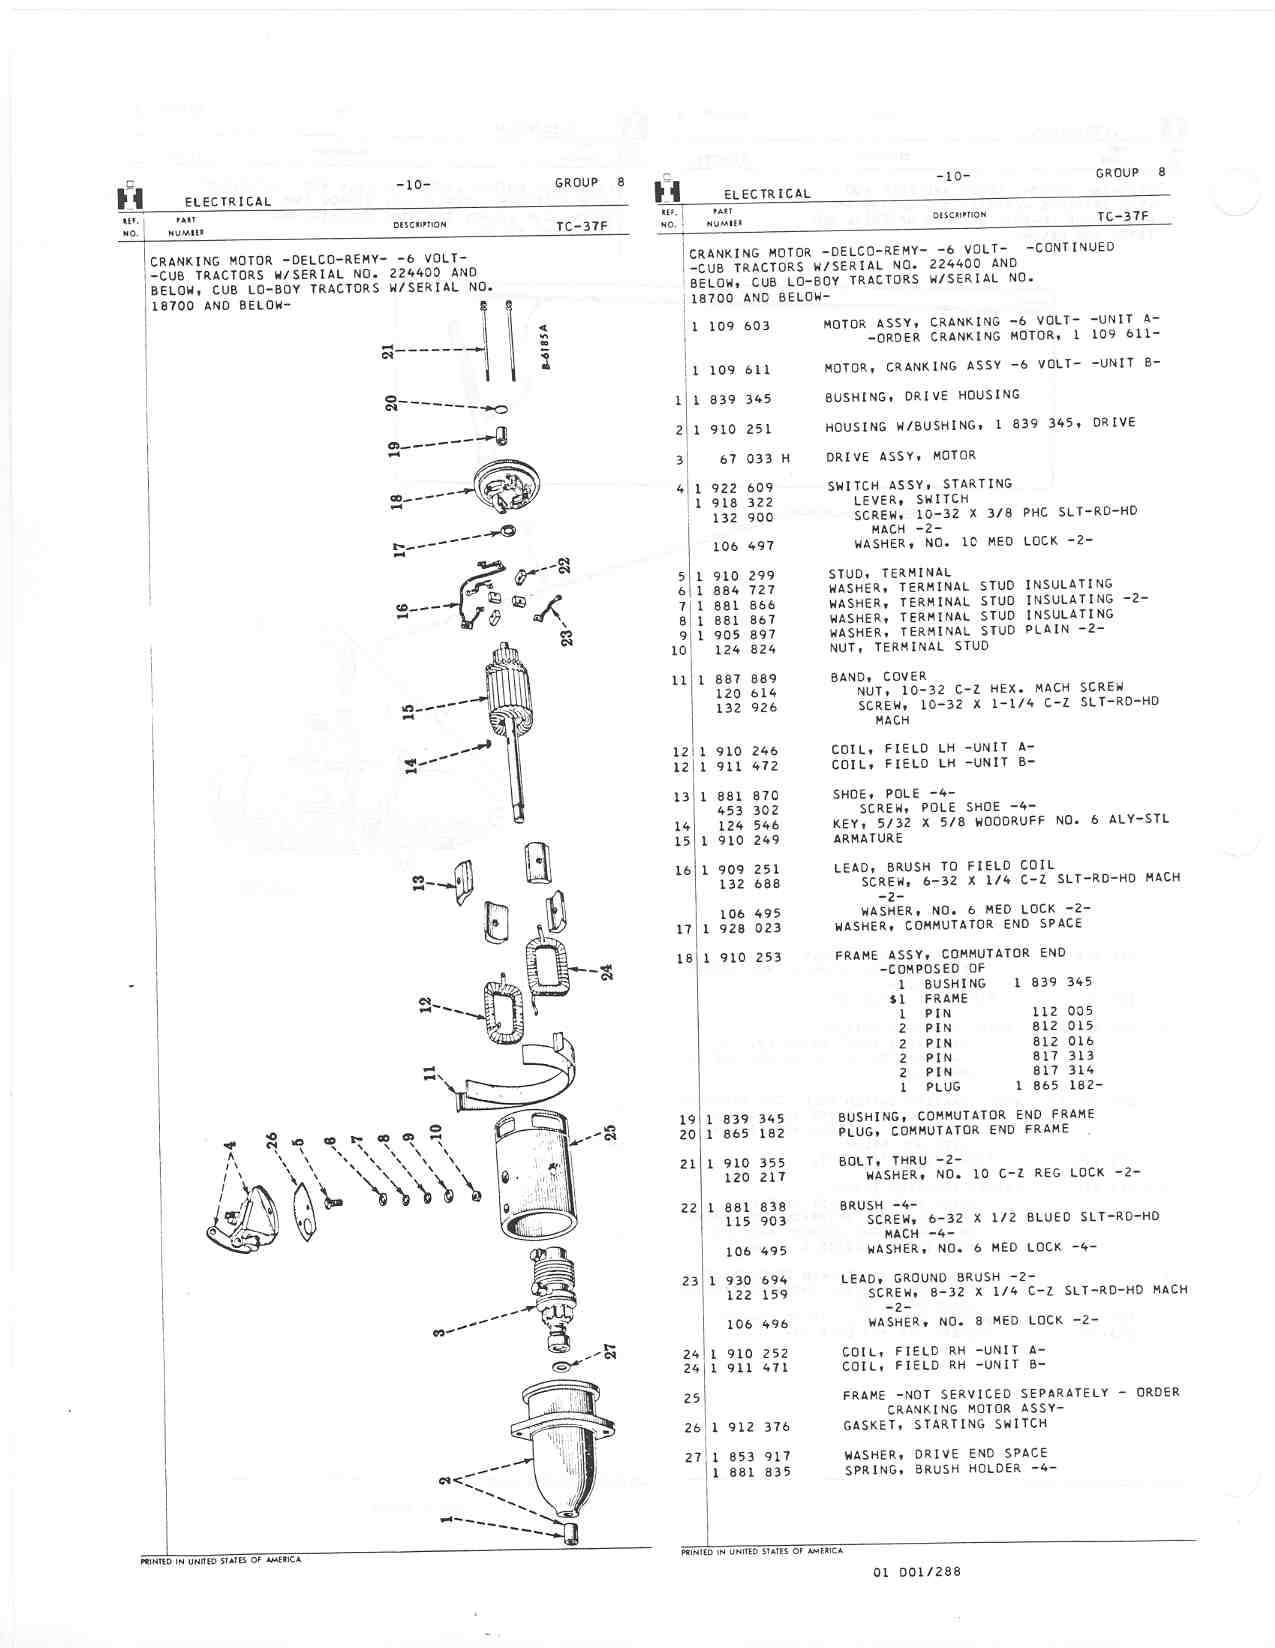 Wiring Diagram On Besides Farmall Cub Tractor Wiring Diagram